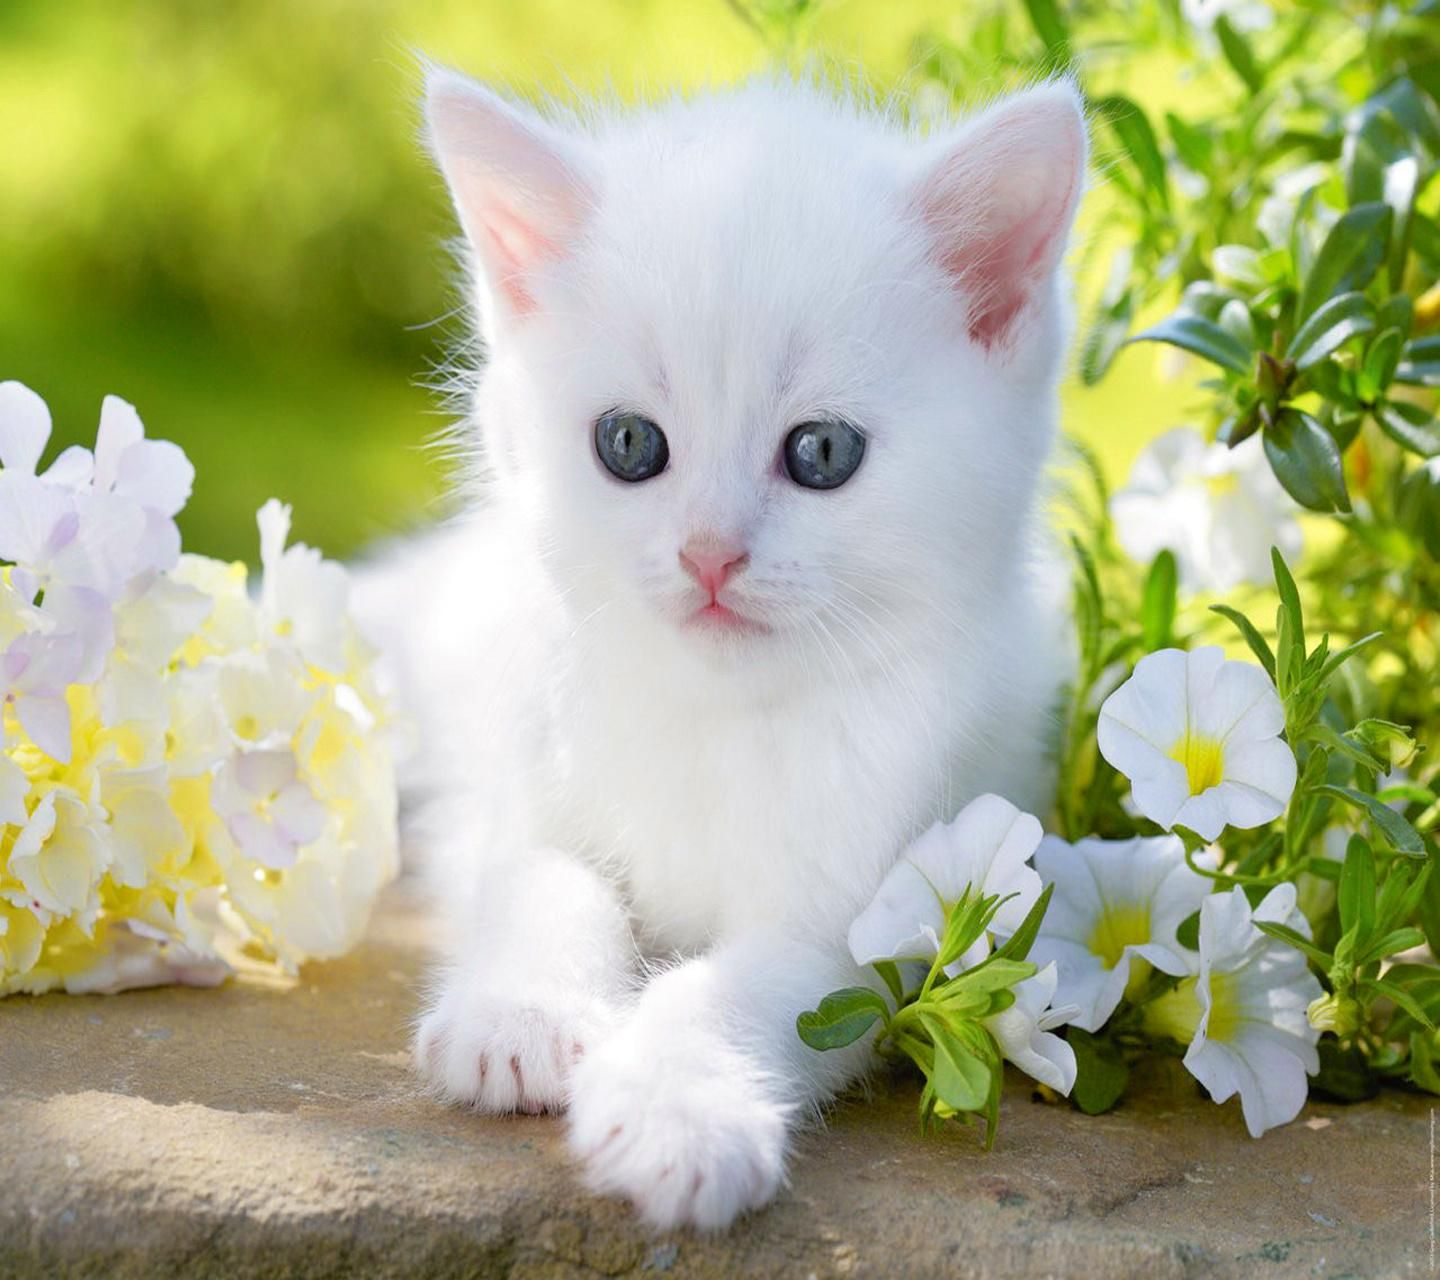 Pin by Esma zehra on Baby cats in 2020 Baby cats, Cute